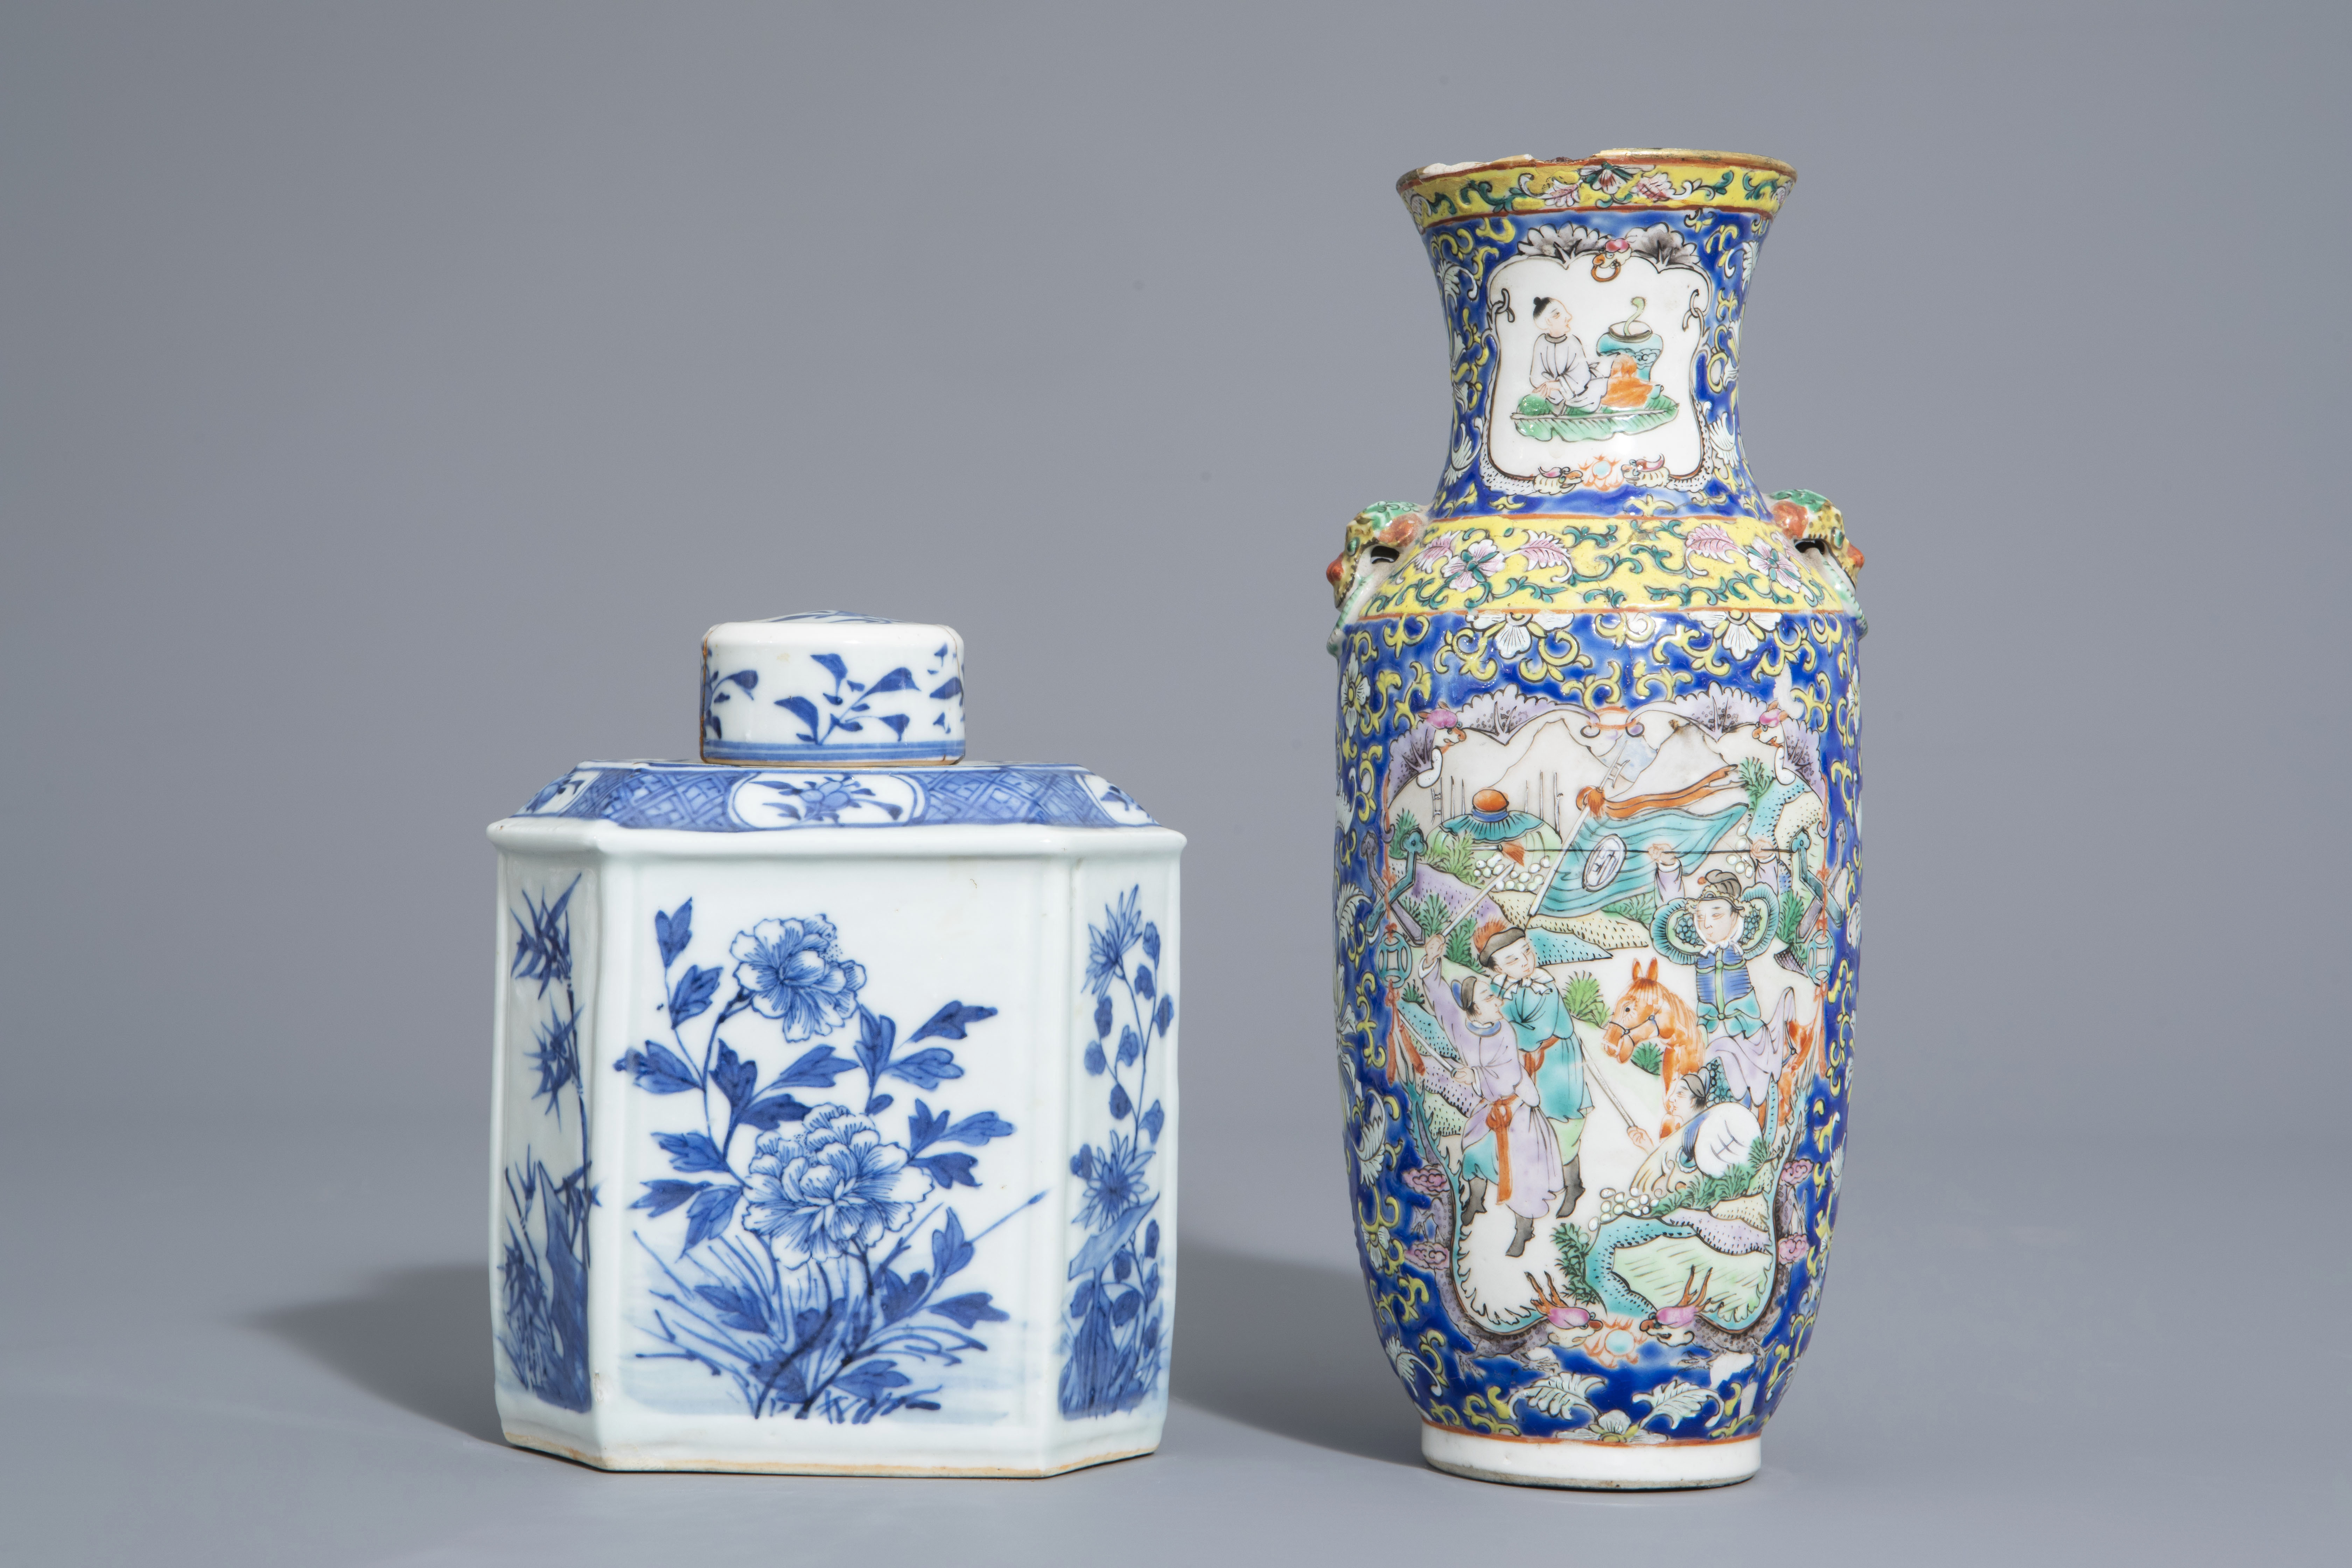 A varied collection of Chinese blue and white and famille rose porcelain, 19th/20th C. - Image 2 of 15